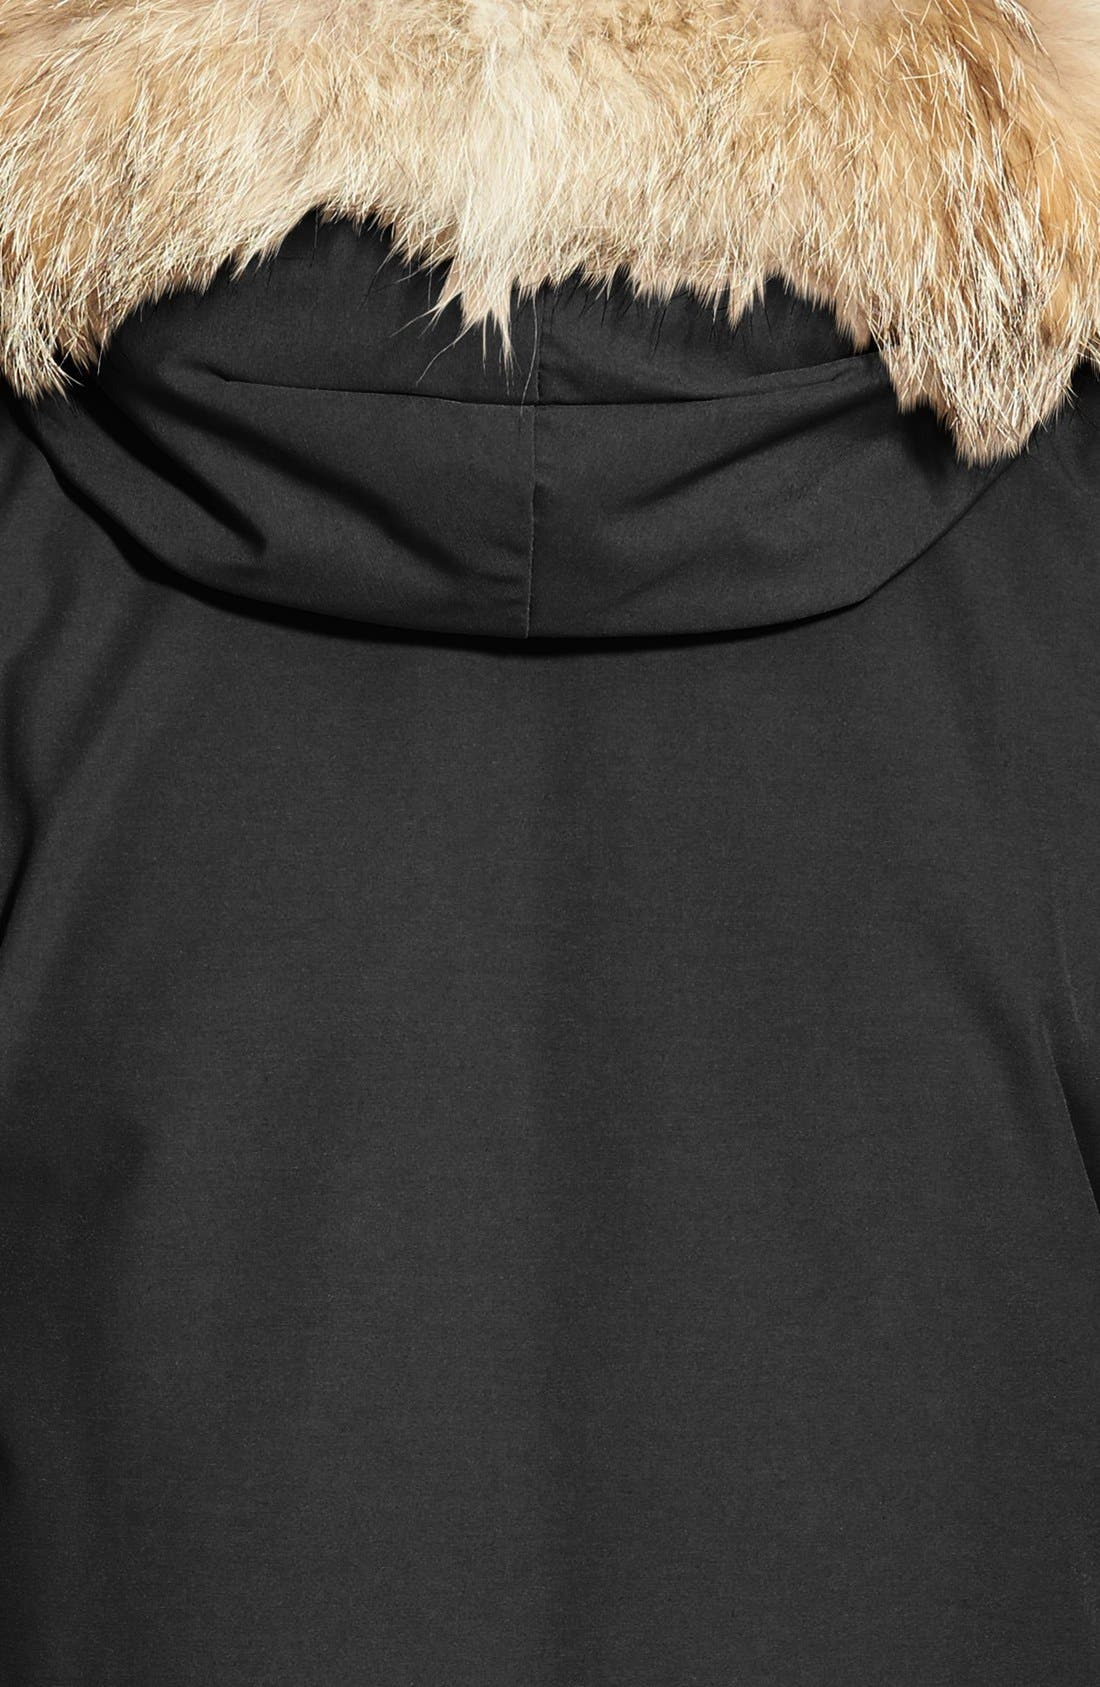 Alternate Image 3  - Canada Goose 'Citadel' Slim Fit Parka with Genuine Coyote Fur